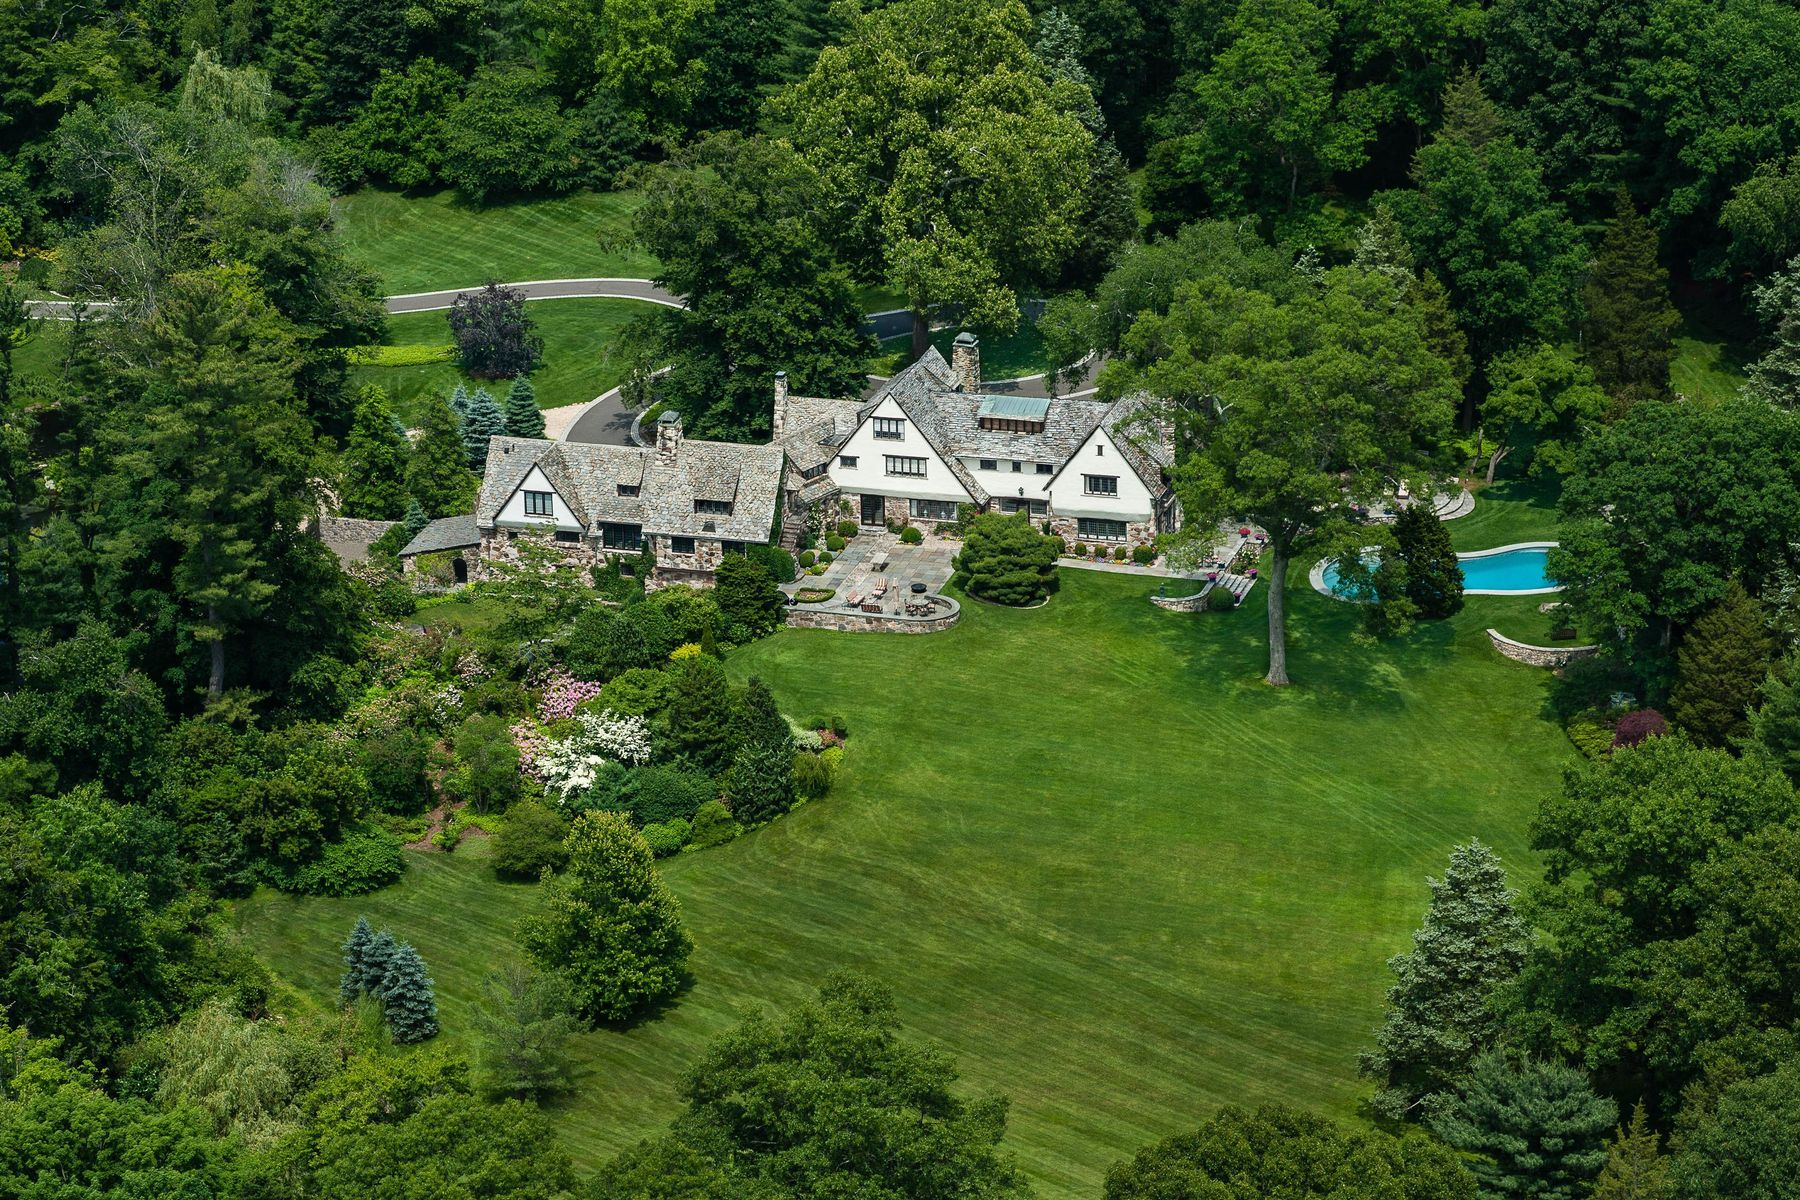 Single Family Home for Sale at The Garden House Greenwich, Connecticut 06831 United States